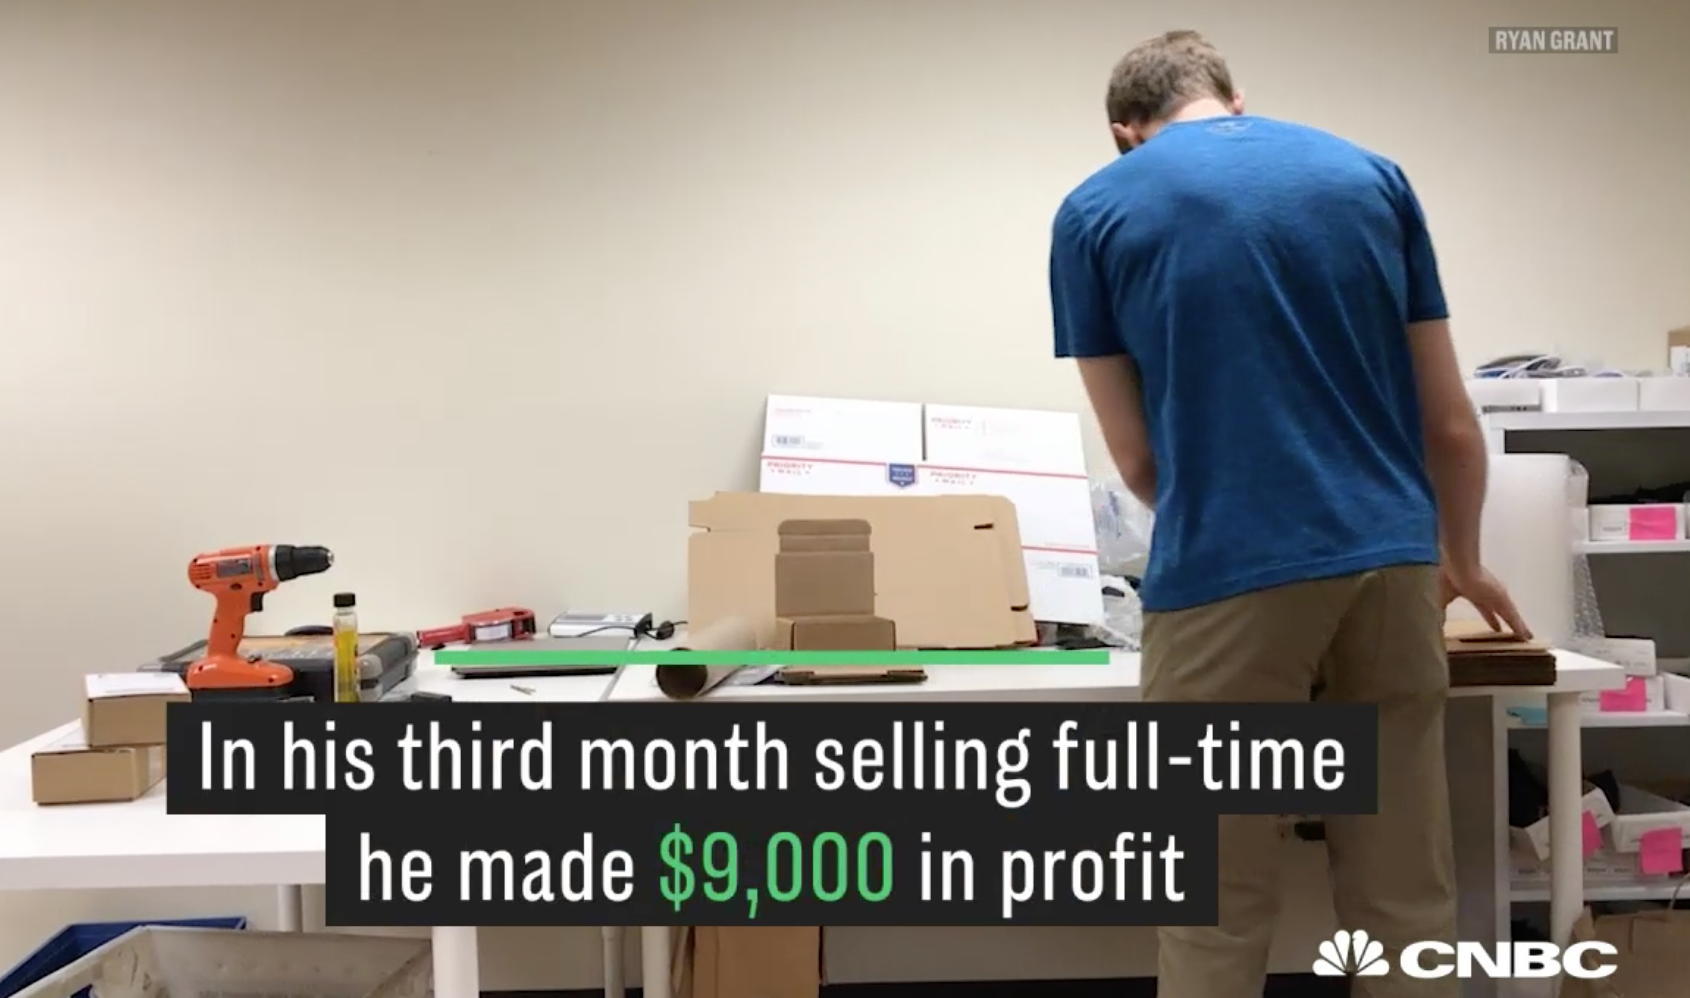 $9k a month in profit after 3 months of selling on Amazon